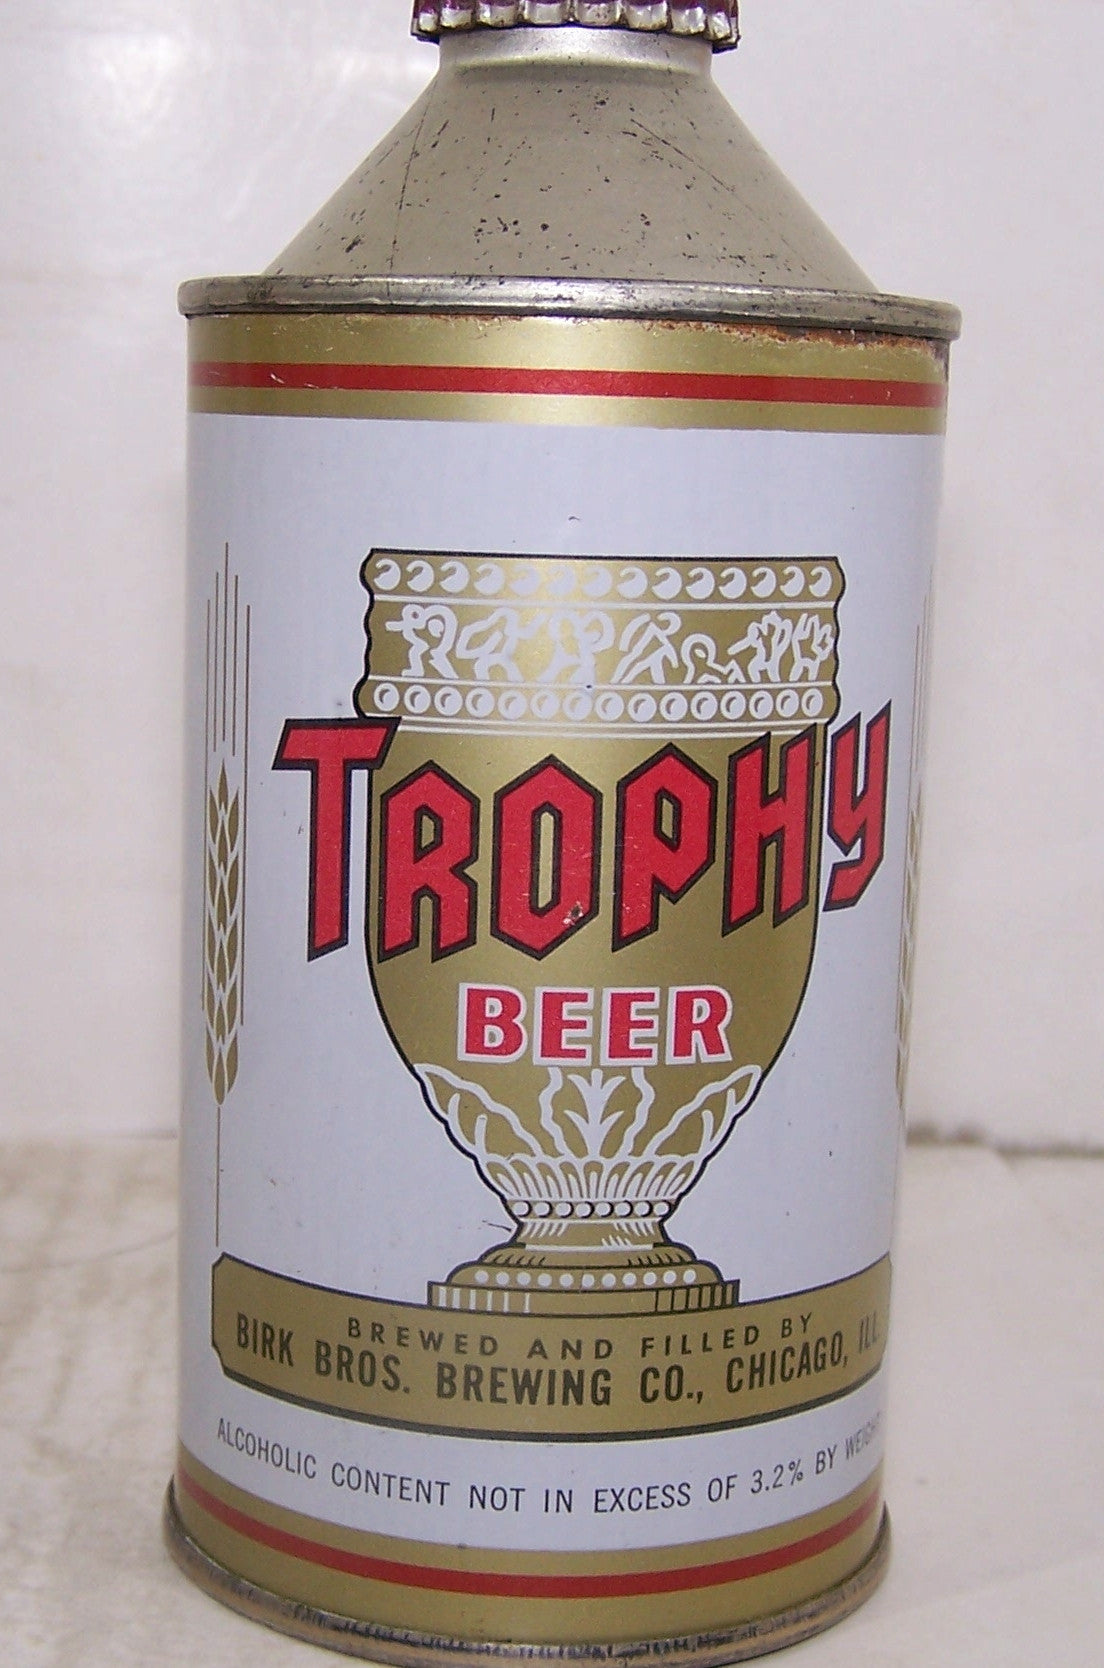 Trophy Beer Not in excess of 3.2% Alc Statement, USBC 187-9, Grade 1-sold8/5/16